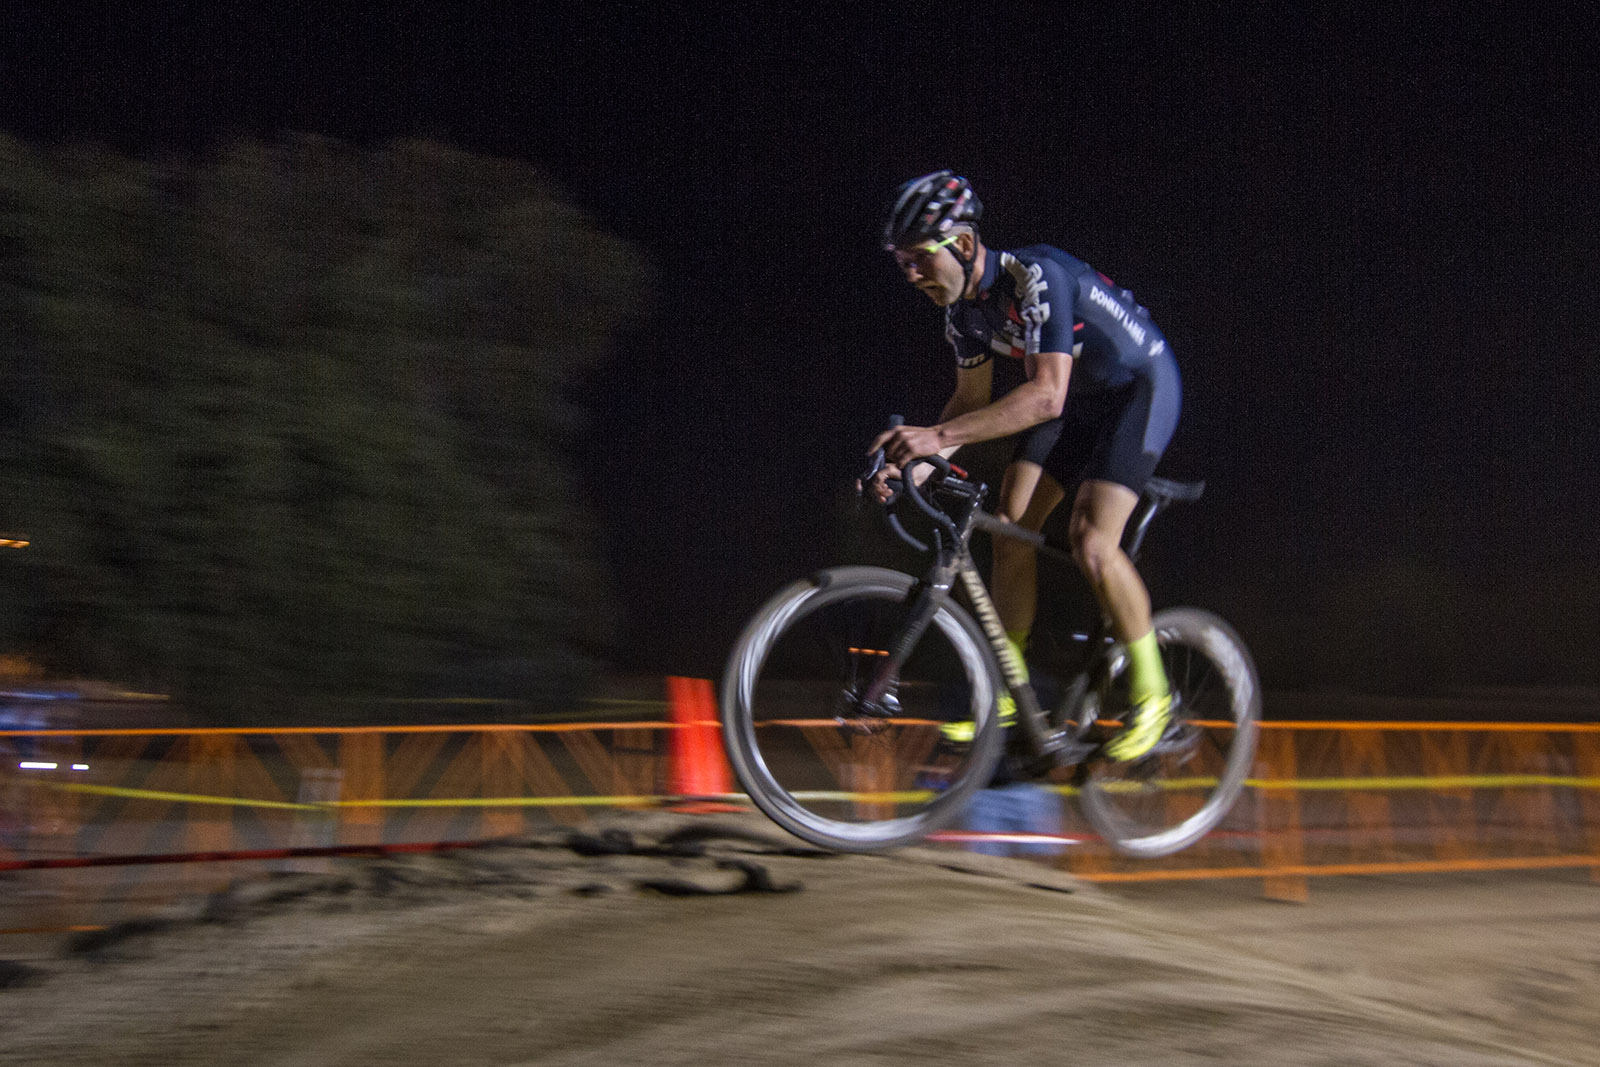 Free Agent Tobin Ortenblad Racing at Night at the CXLA Cyclocross